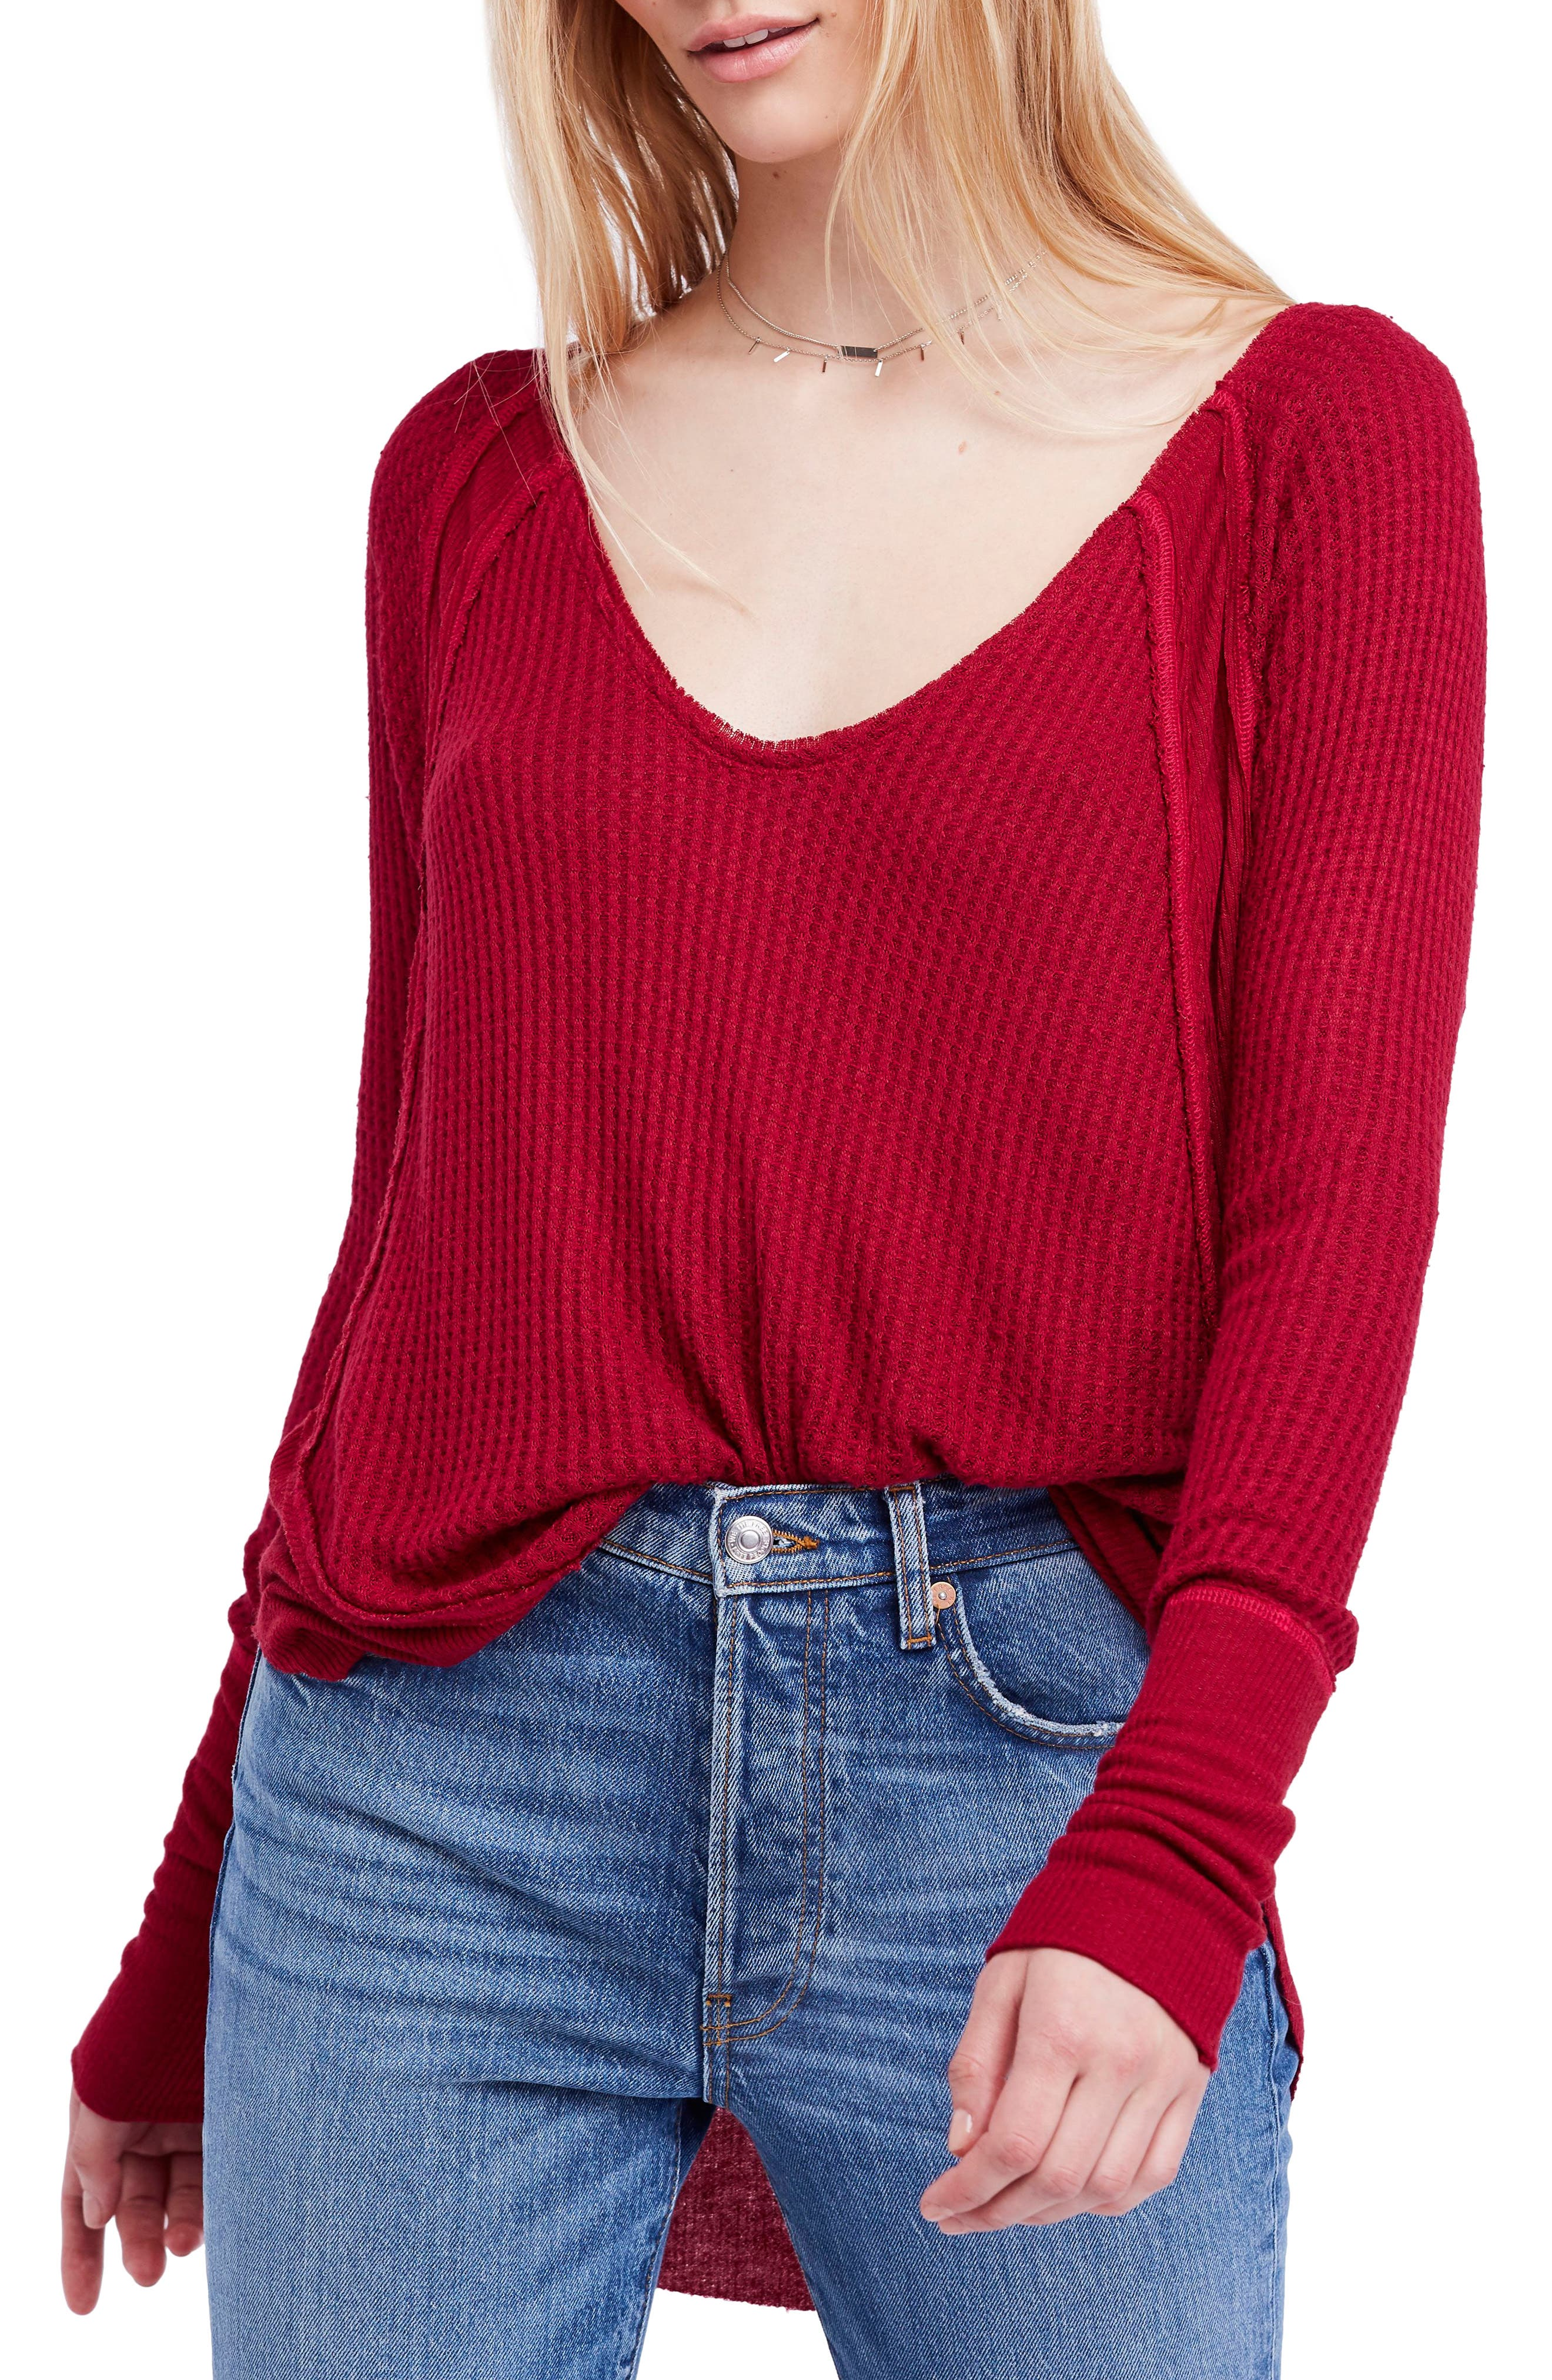 04c572fed0c06 We the free people catalina neck thermal top jpg 480x730 Red top